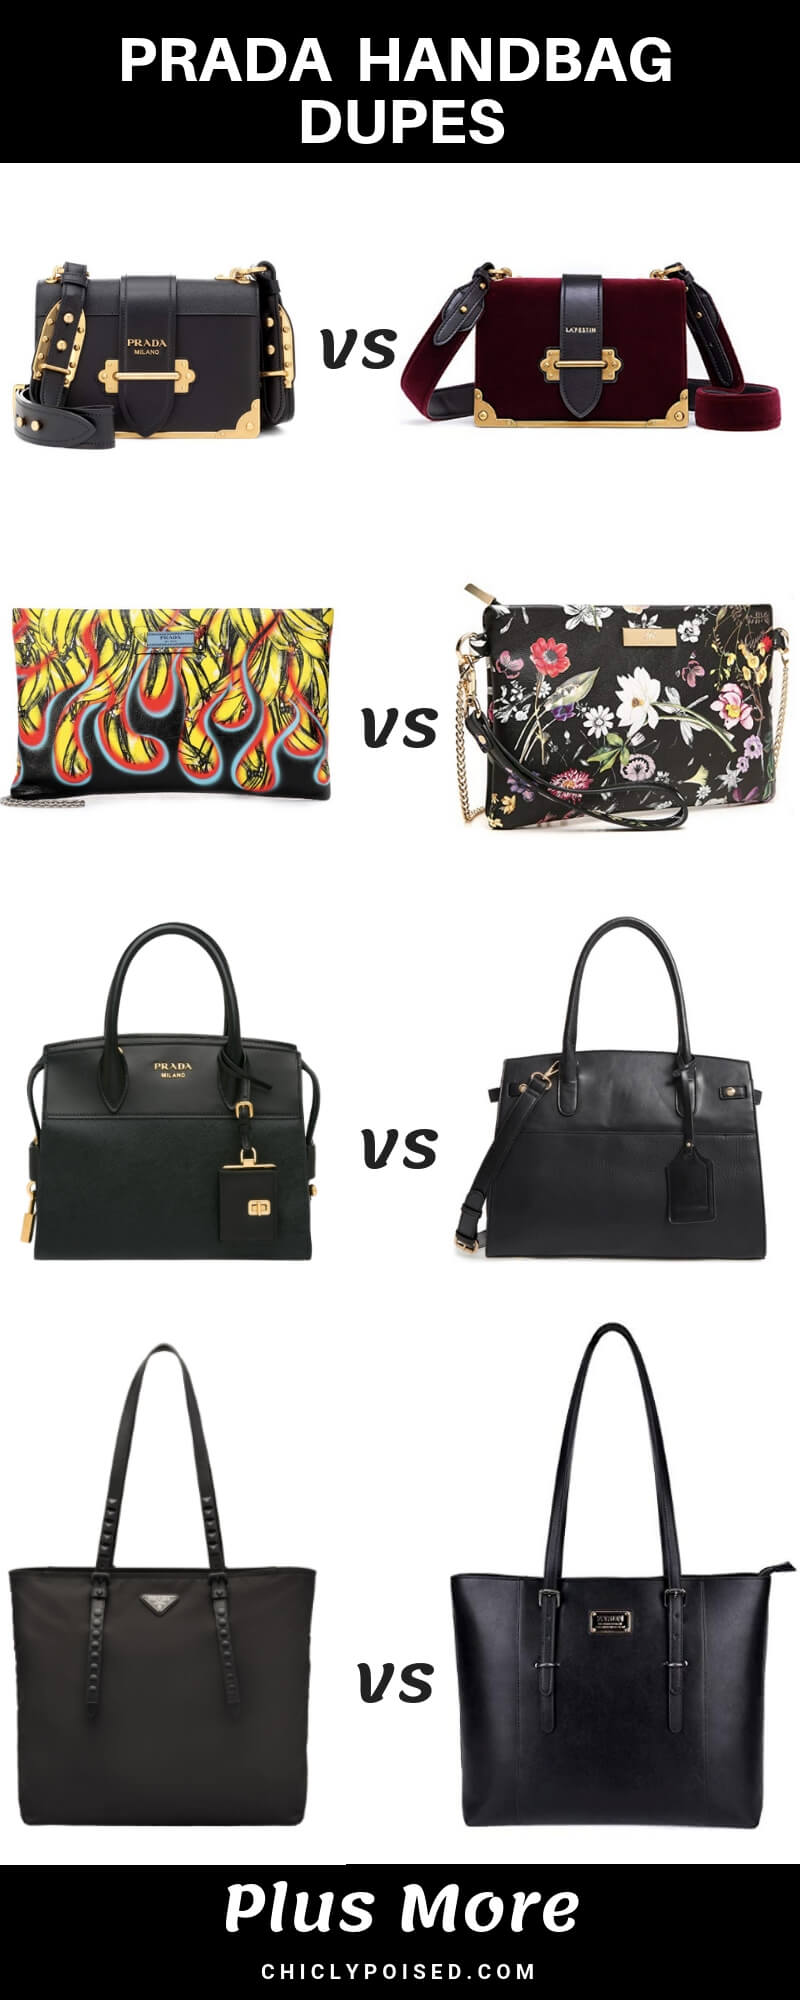 b6ebd81c1d8e ... promo code save money with designer dupes prada bags dupes 90316 b8db8